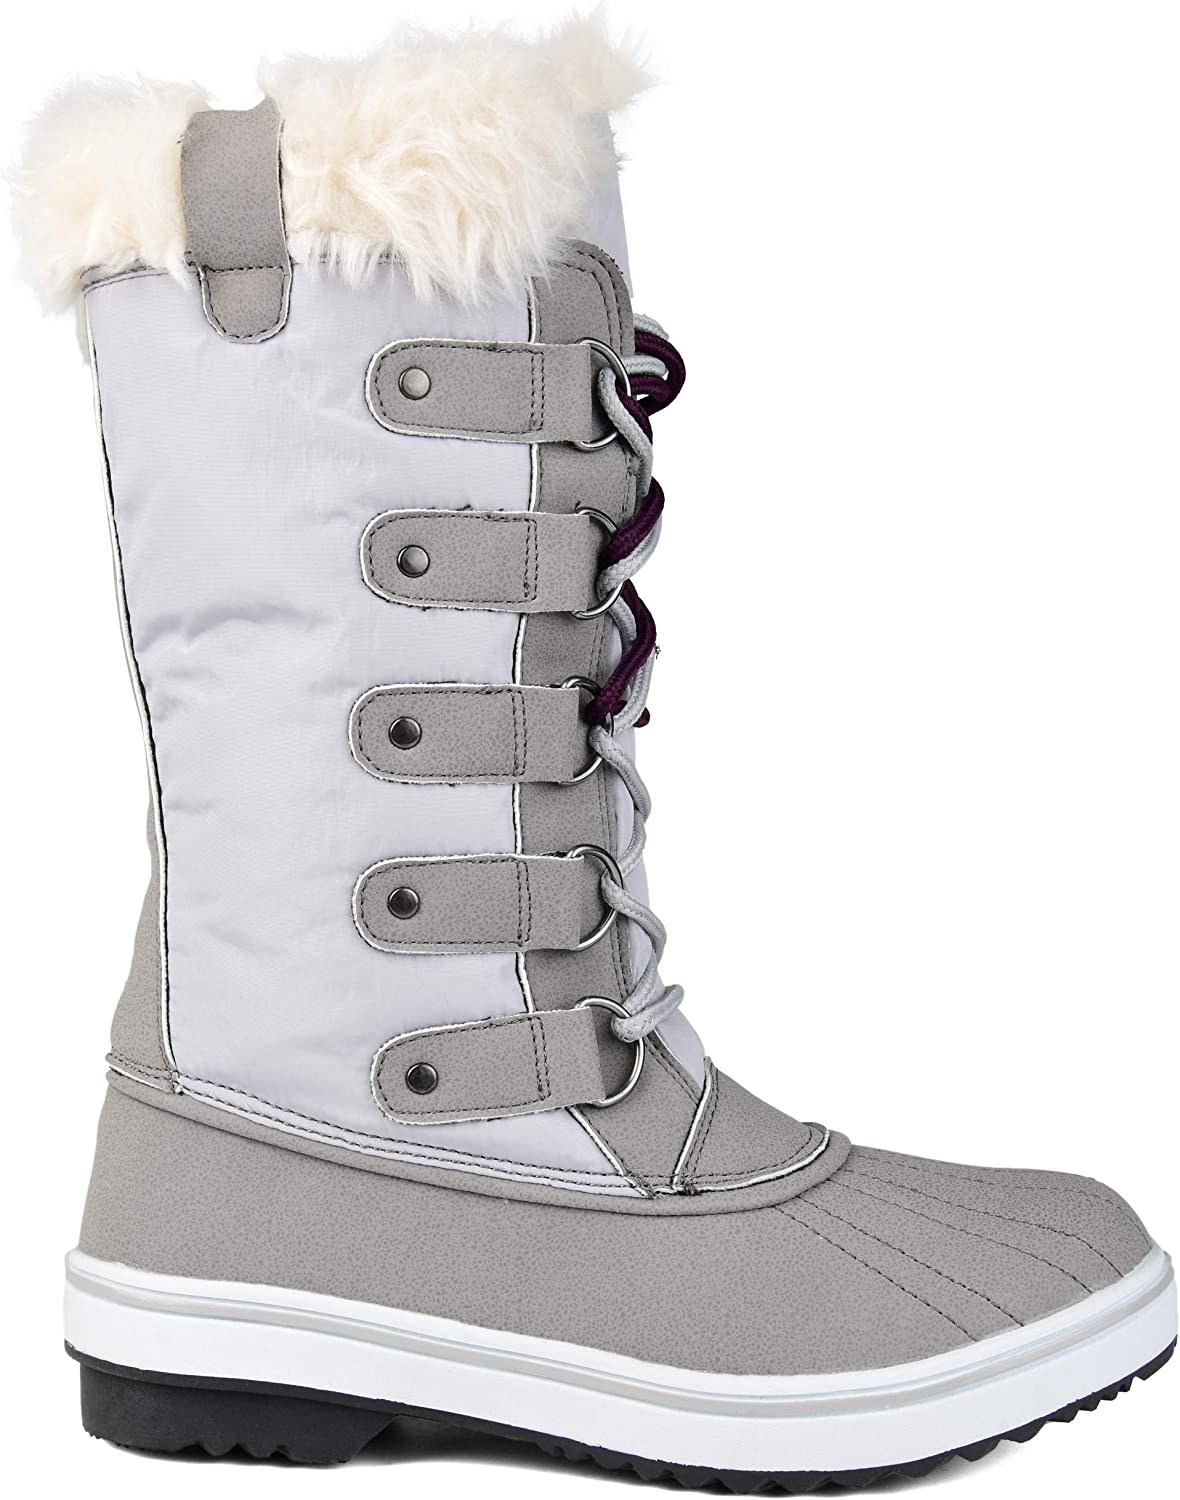 Brinley Co. Womens Lined Lace-up Snow Boot Grey, 7 Regular US